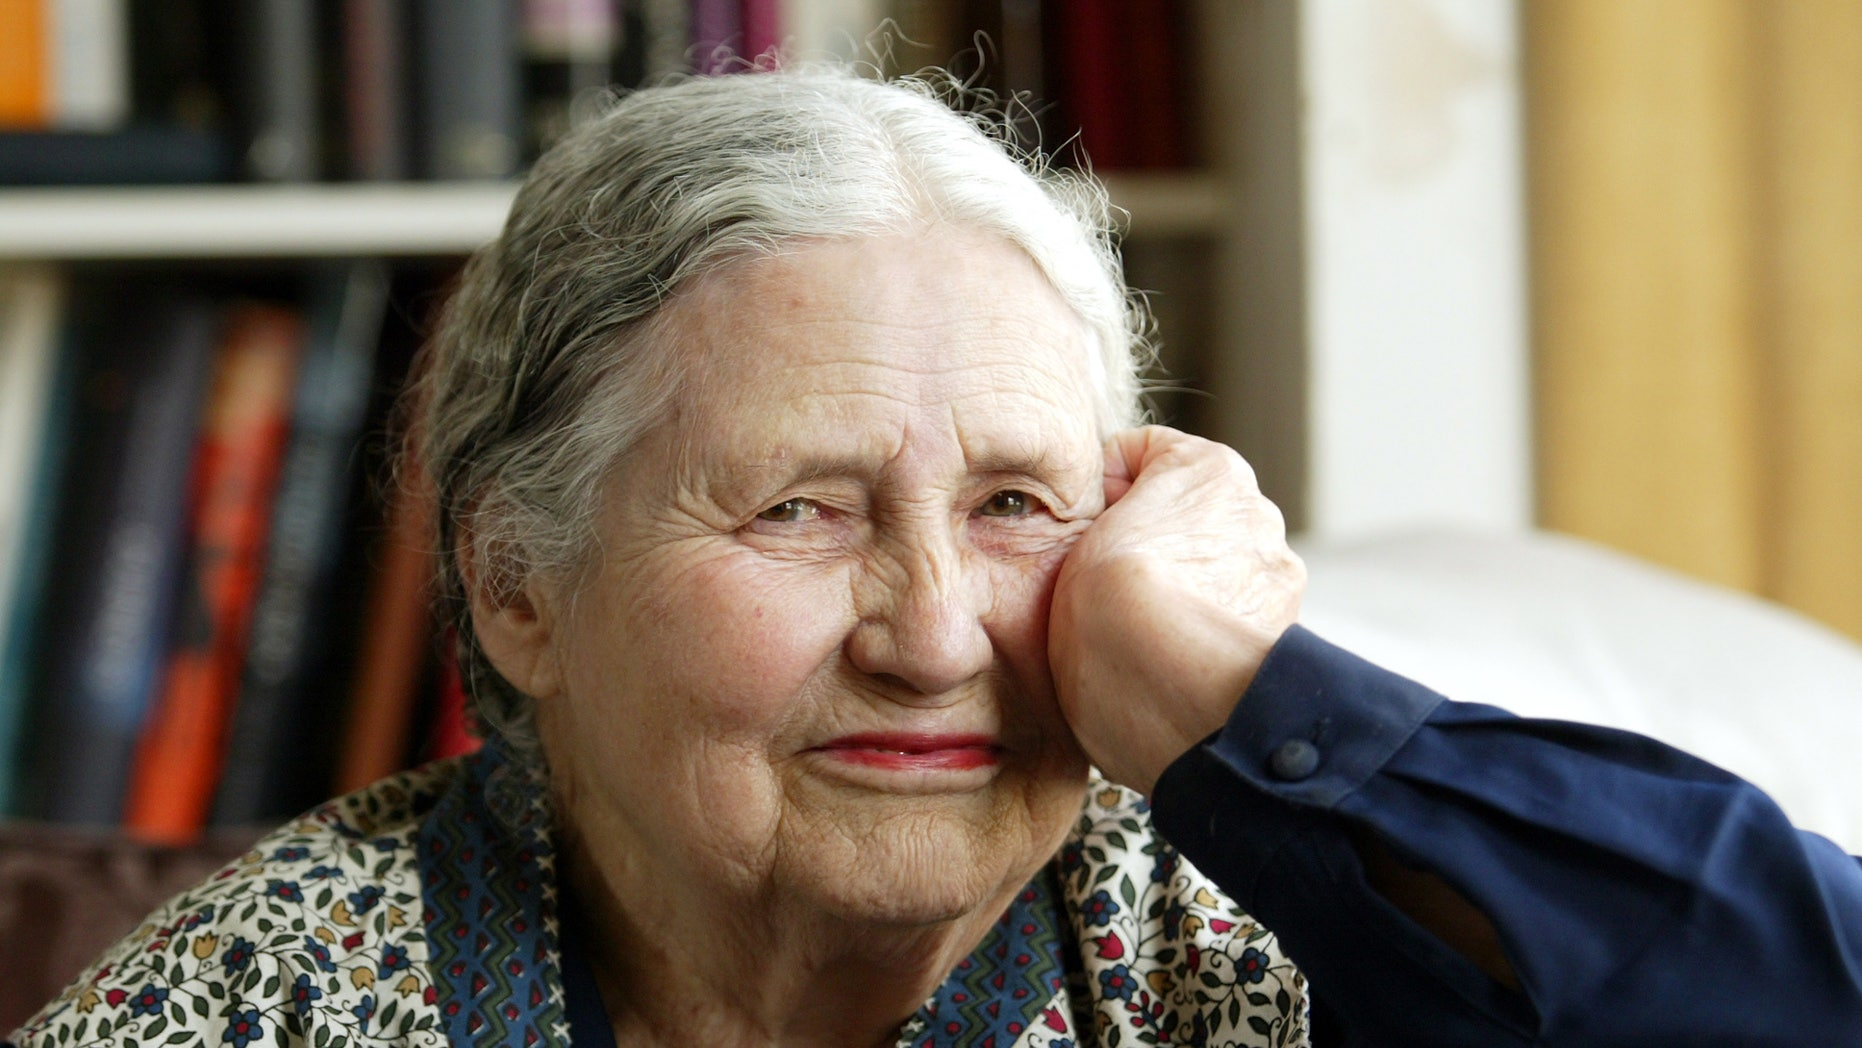 """In this April 17, 2006 file photo, Writer Doris Lessing, 86, sits in her home in north London. Lessing, the free-thinking, world-traveling, often-polarizing writer of """"The Golden Notebook"""" and dozens of other novels that reflected her own improbable journey across the former British empire, has died, early Sunday, Nov. 17, 2013. She was 94."""